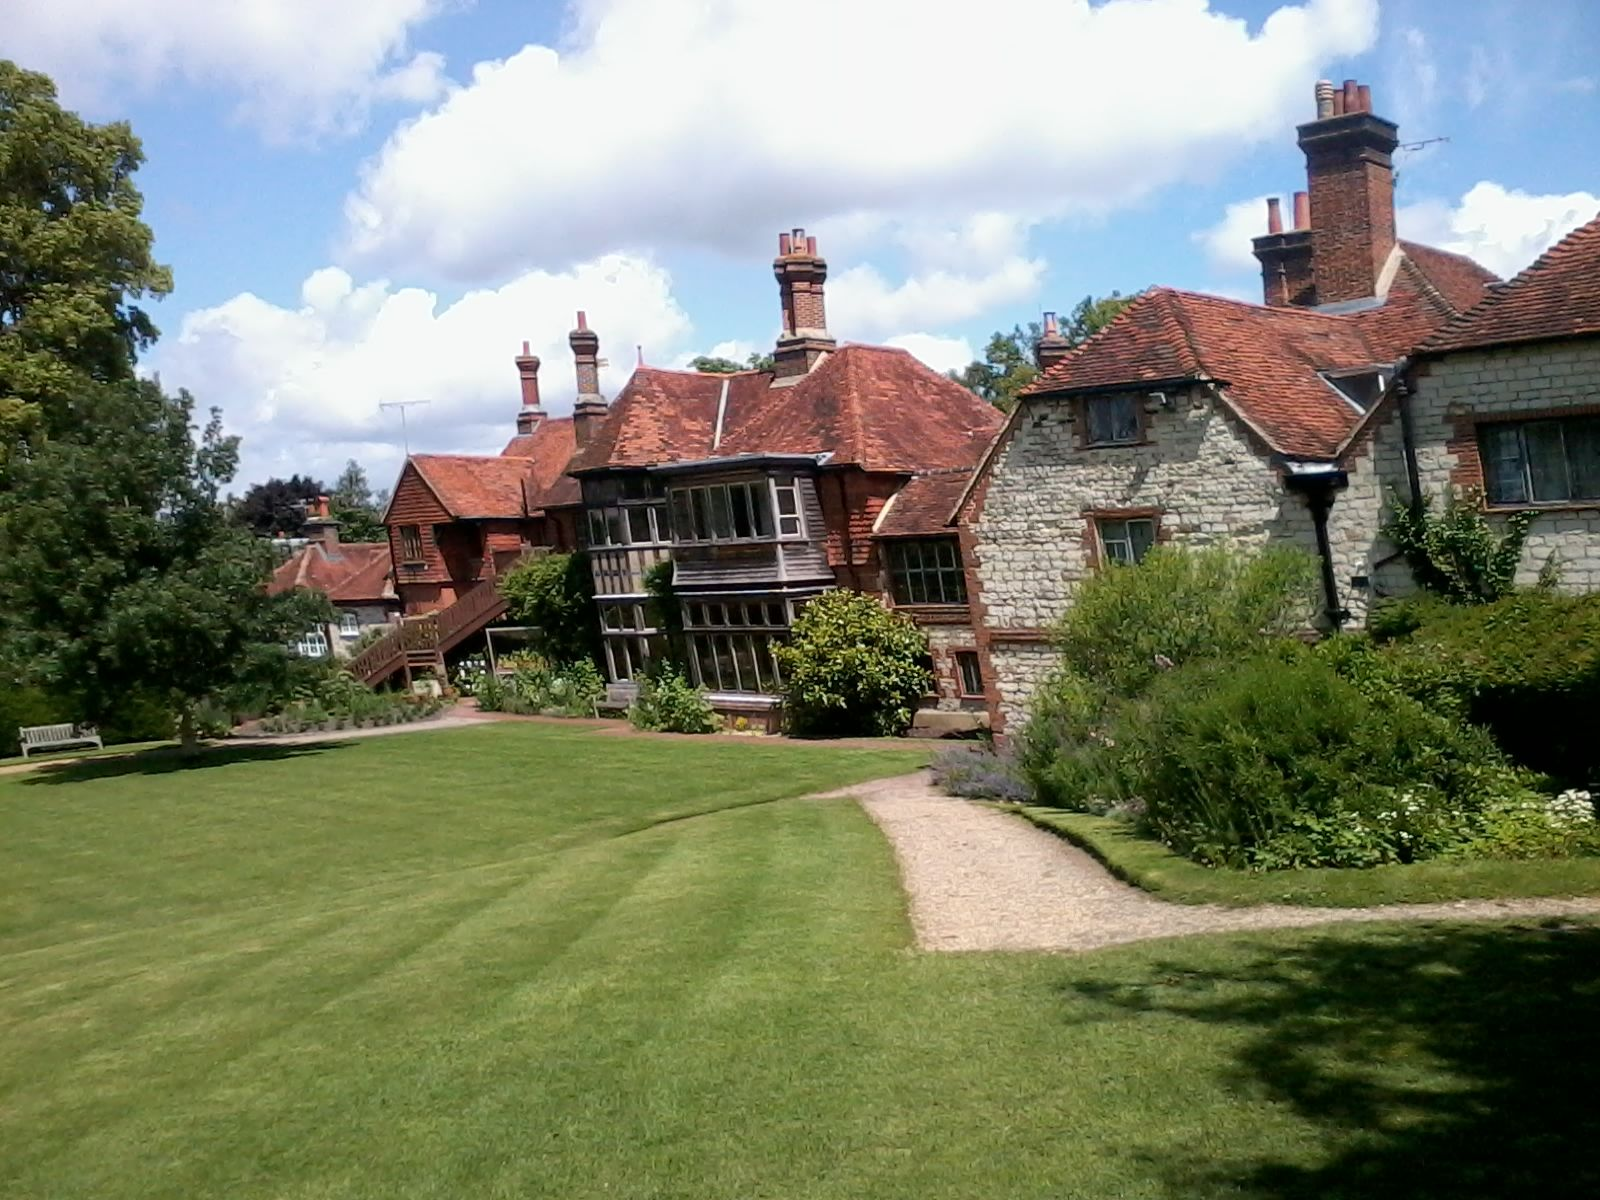 Gilbert White's house: the parlour (with the large windows) was added by him to give a better view of his garden.